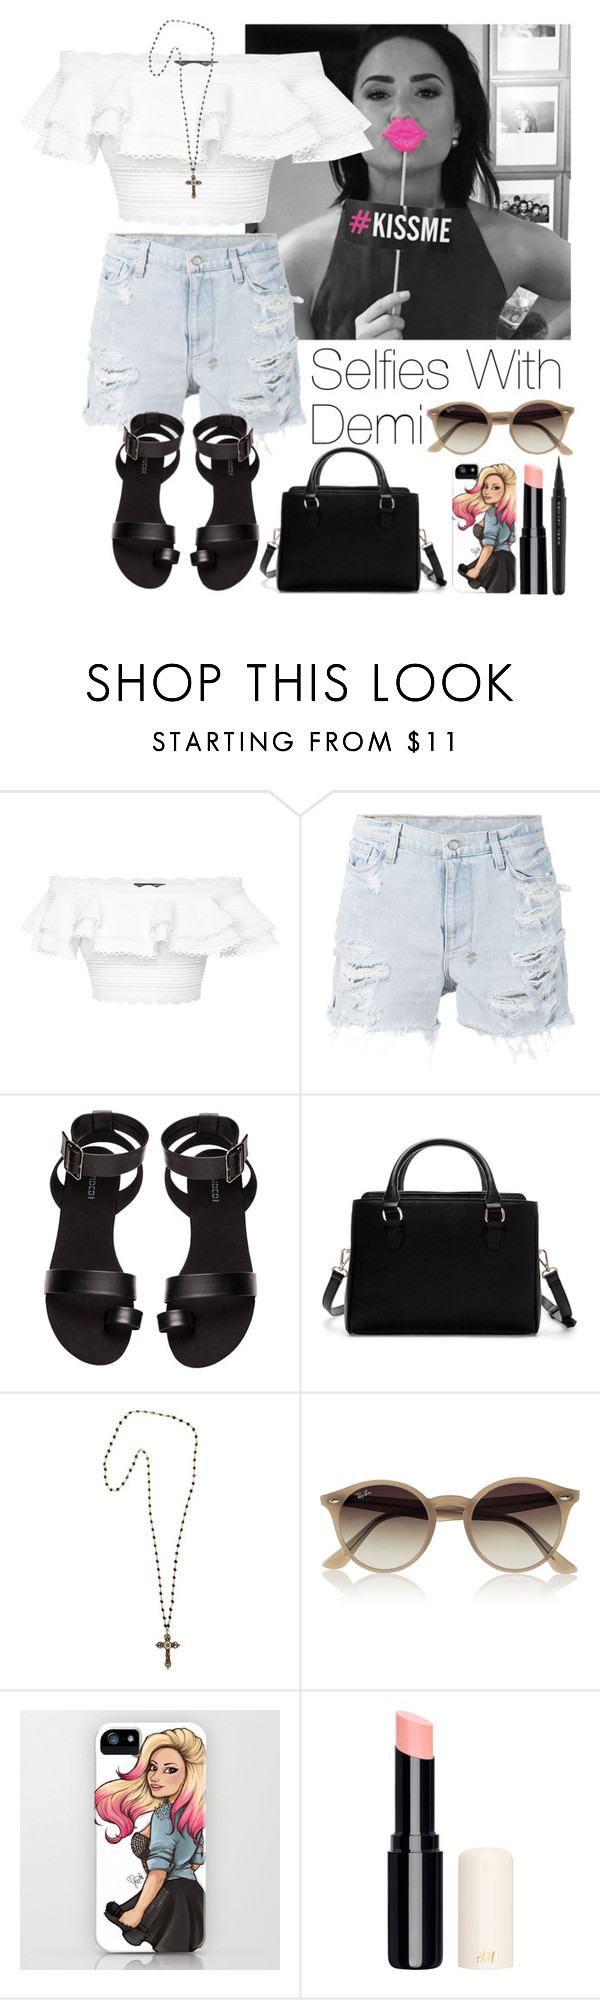 """""""Selfies with Demi"""" by lovatic92 ❤ liked on Polyvore featuring Alexander McQueen, Ksubi, H&M, Zara, Heather Gardner, Ray-Ban, Marc Jacobs, DemiLovato, Lovatic and selfie"""